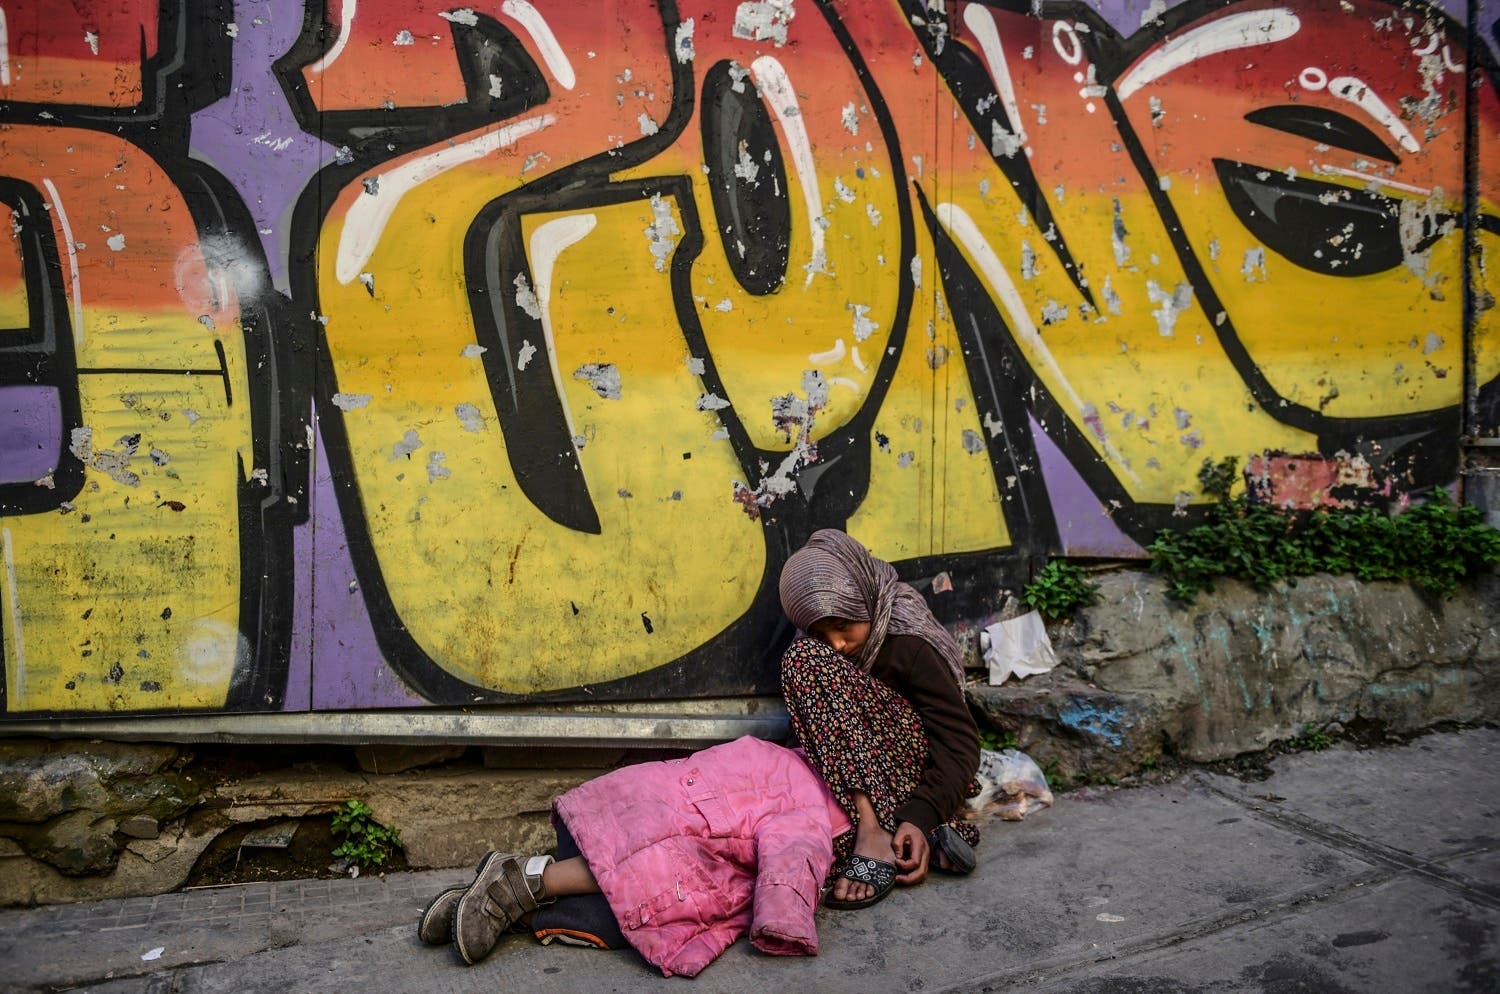 A Syrian girl begs in the street as another child sleeps next to her, in downtown Istanbul. (AFP)